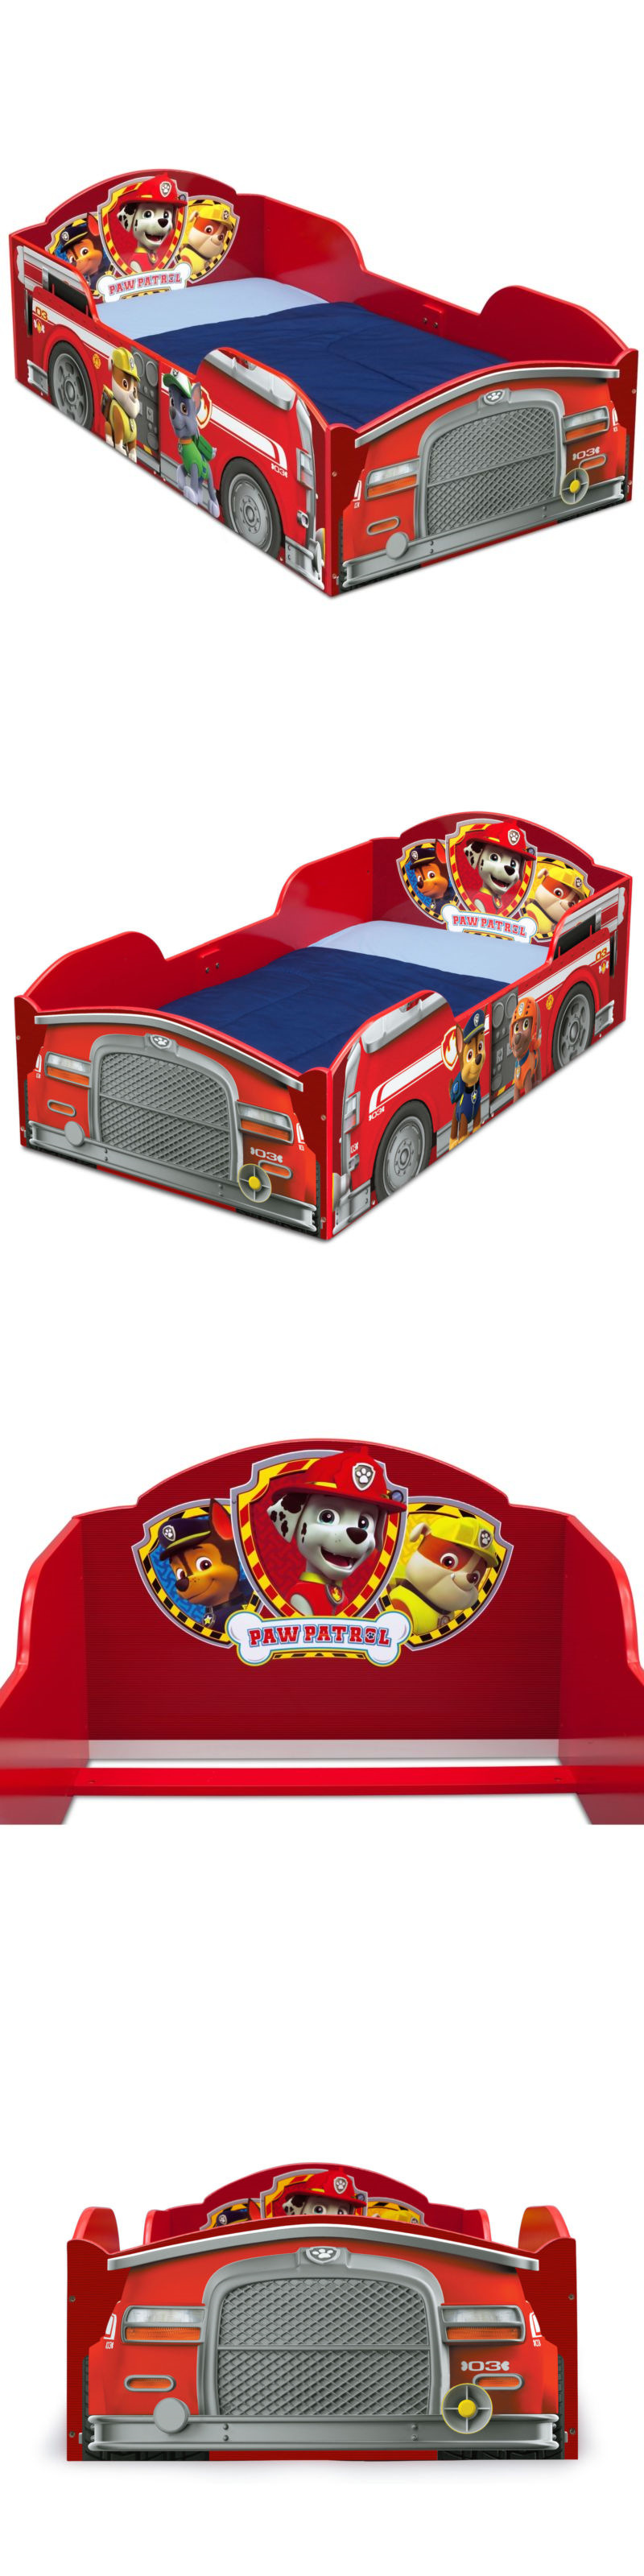 Boys' loft bed with slide (box 2)  Bedroom Furniture  Nick Jr Paw Patrol Wood Toddler Bed ue BUY